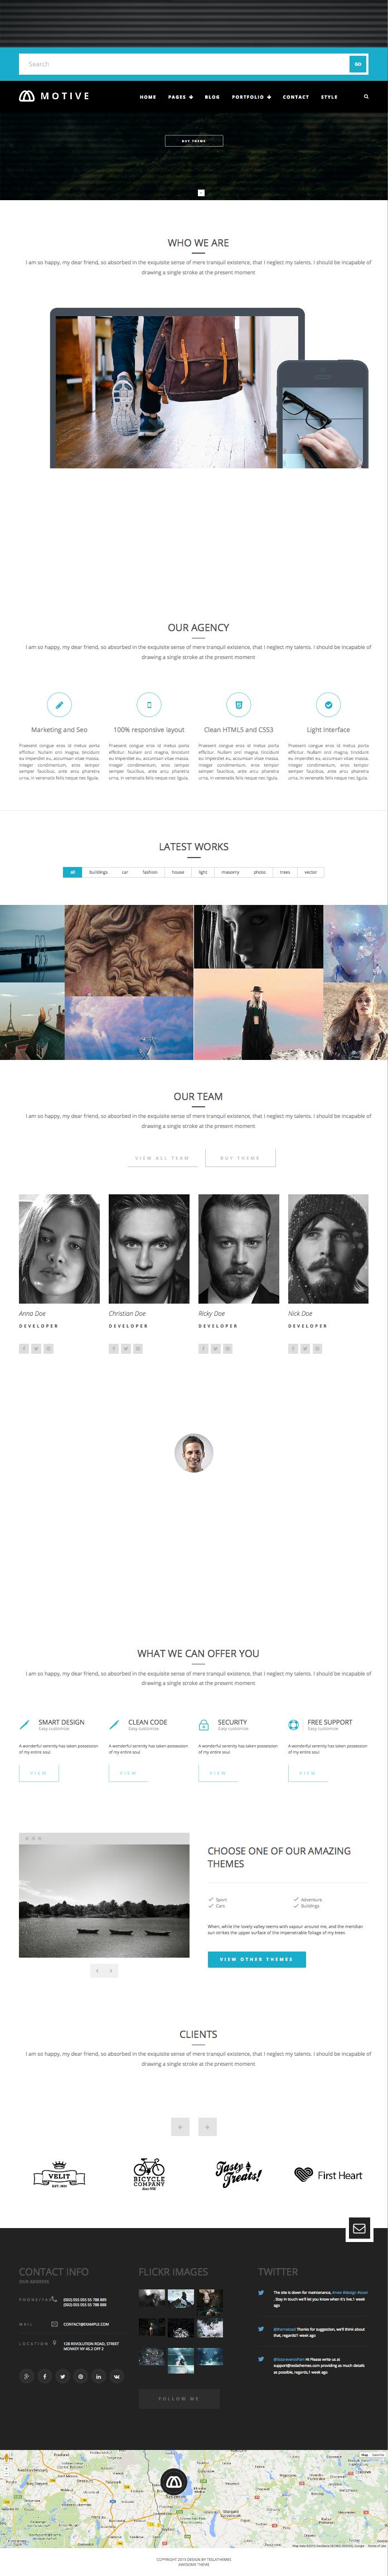 Motive WordPress Portfolio Grid, Mosaic & Masonry Theme